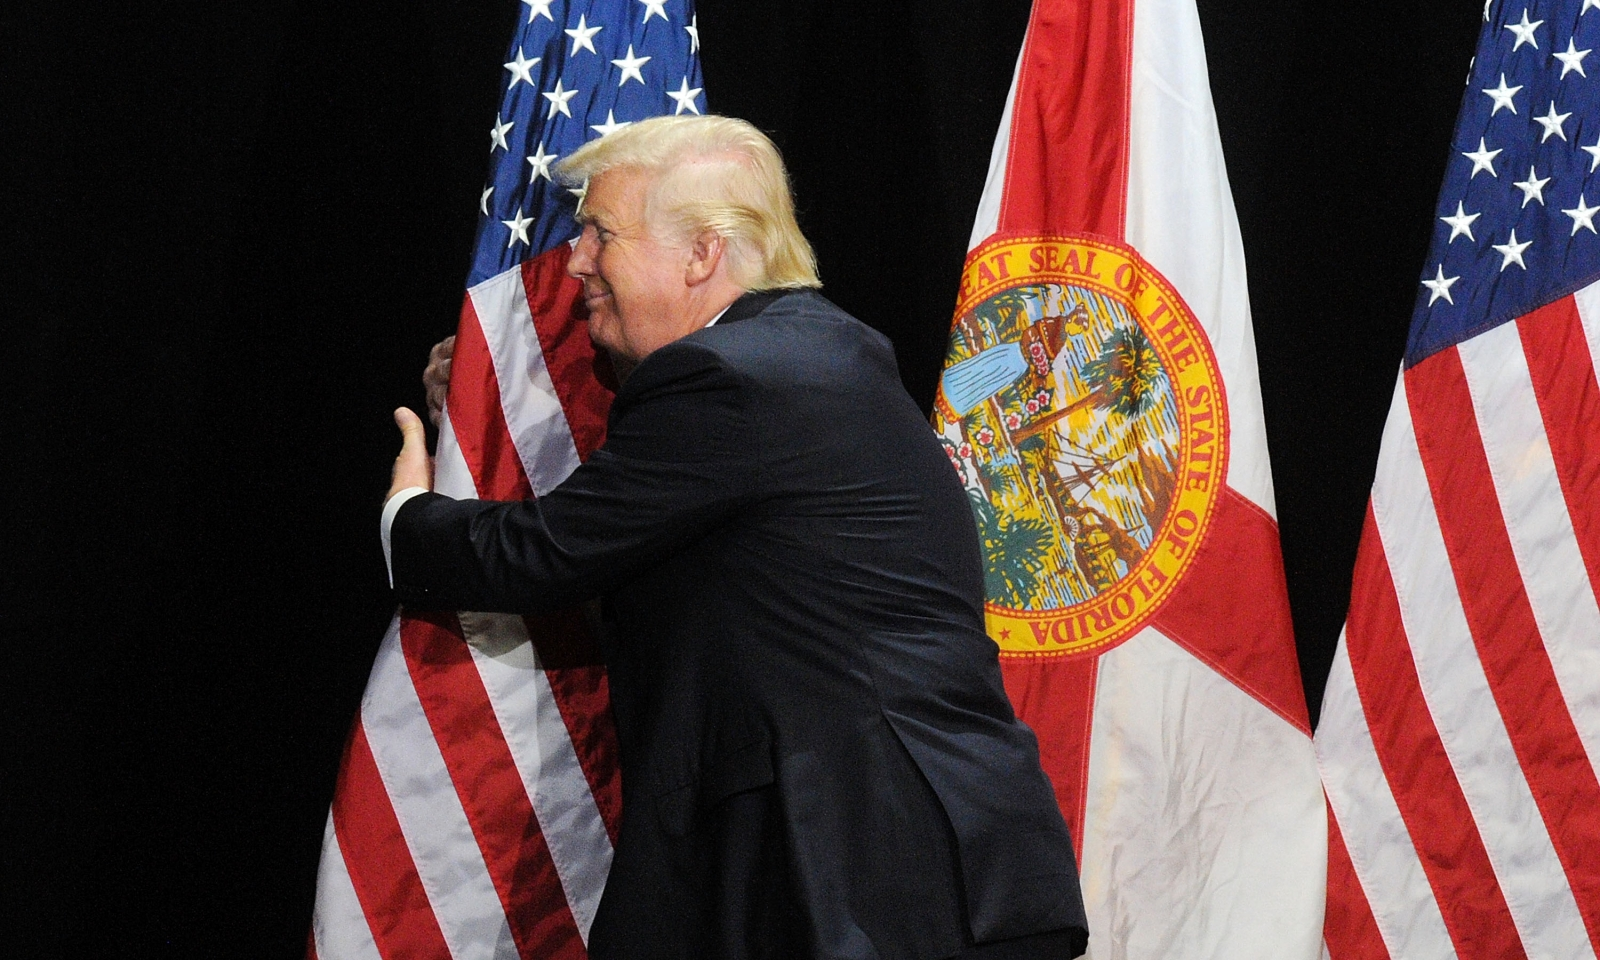 Donald Trump hugging a flag